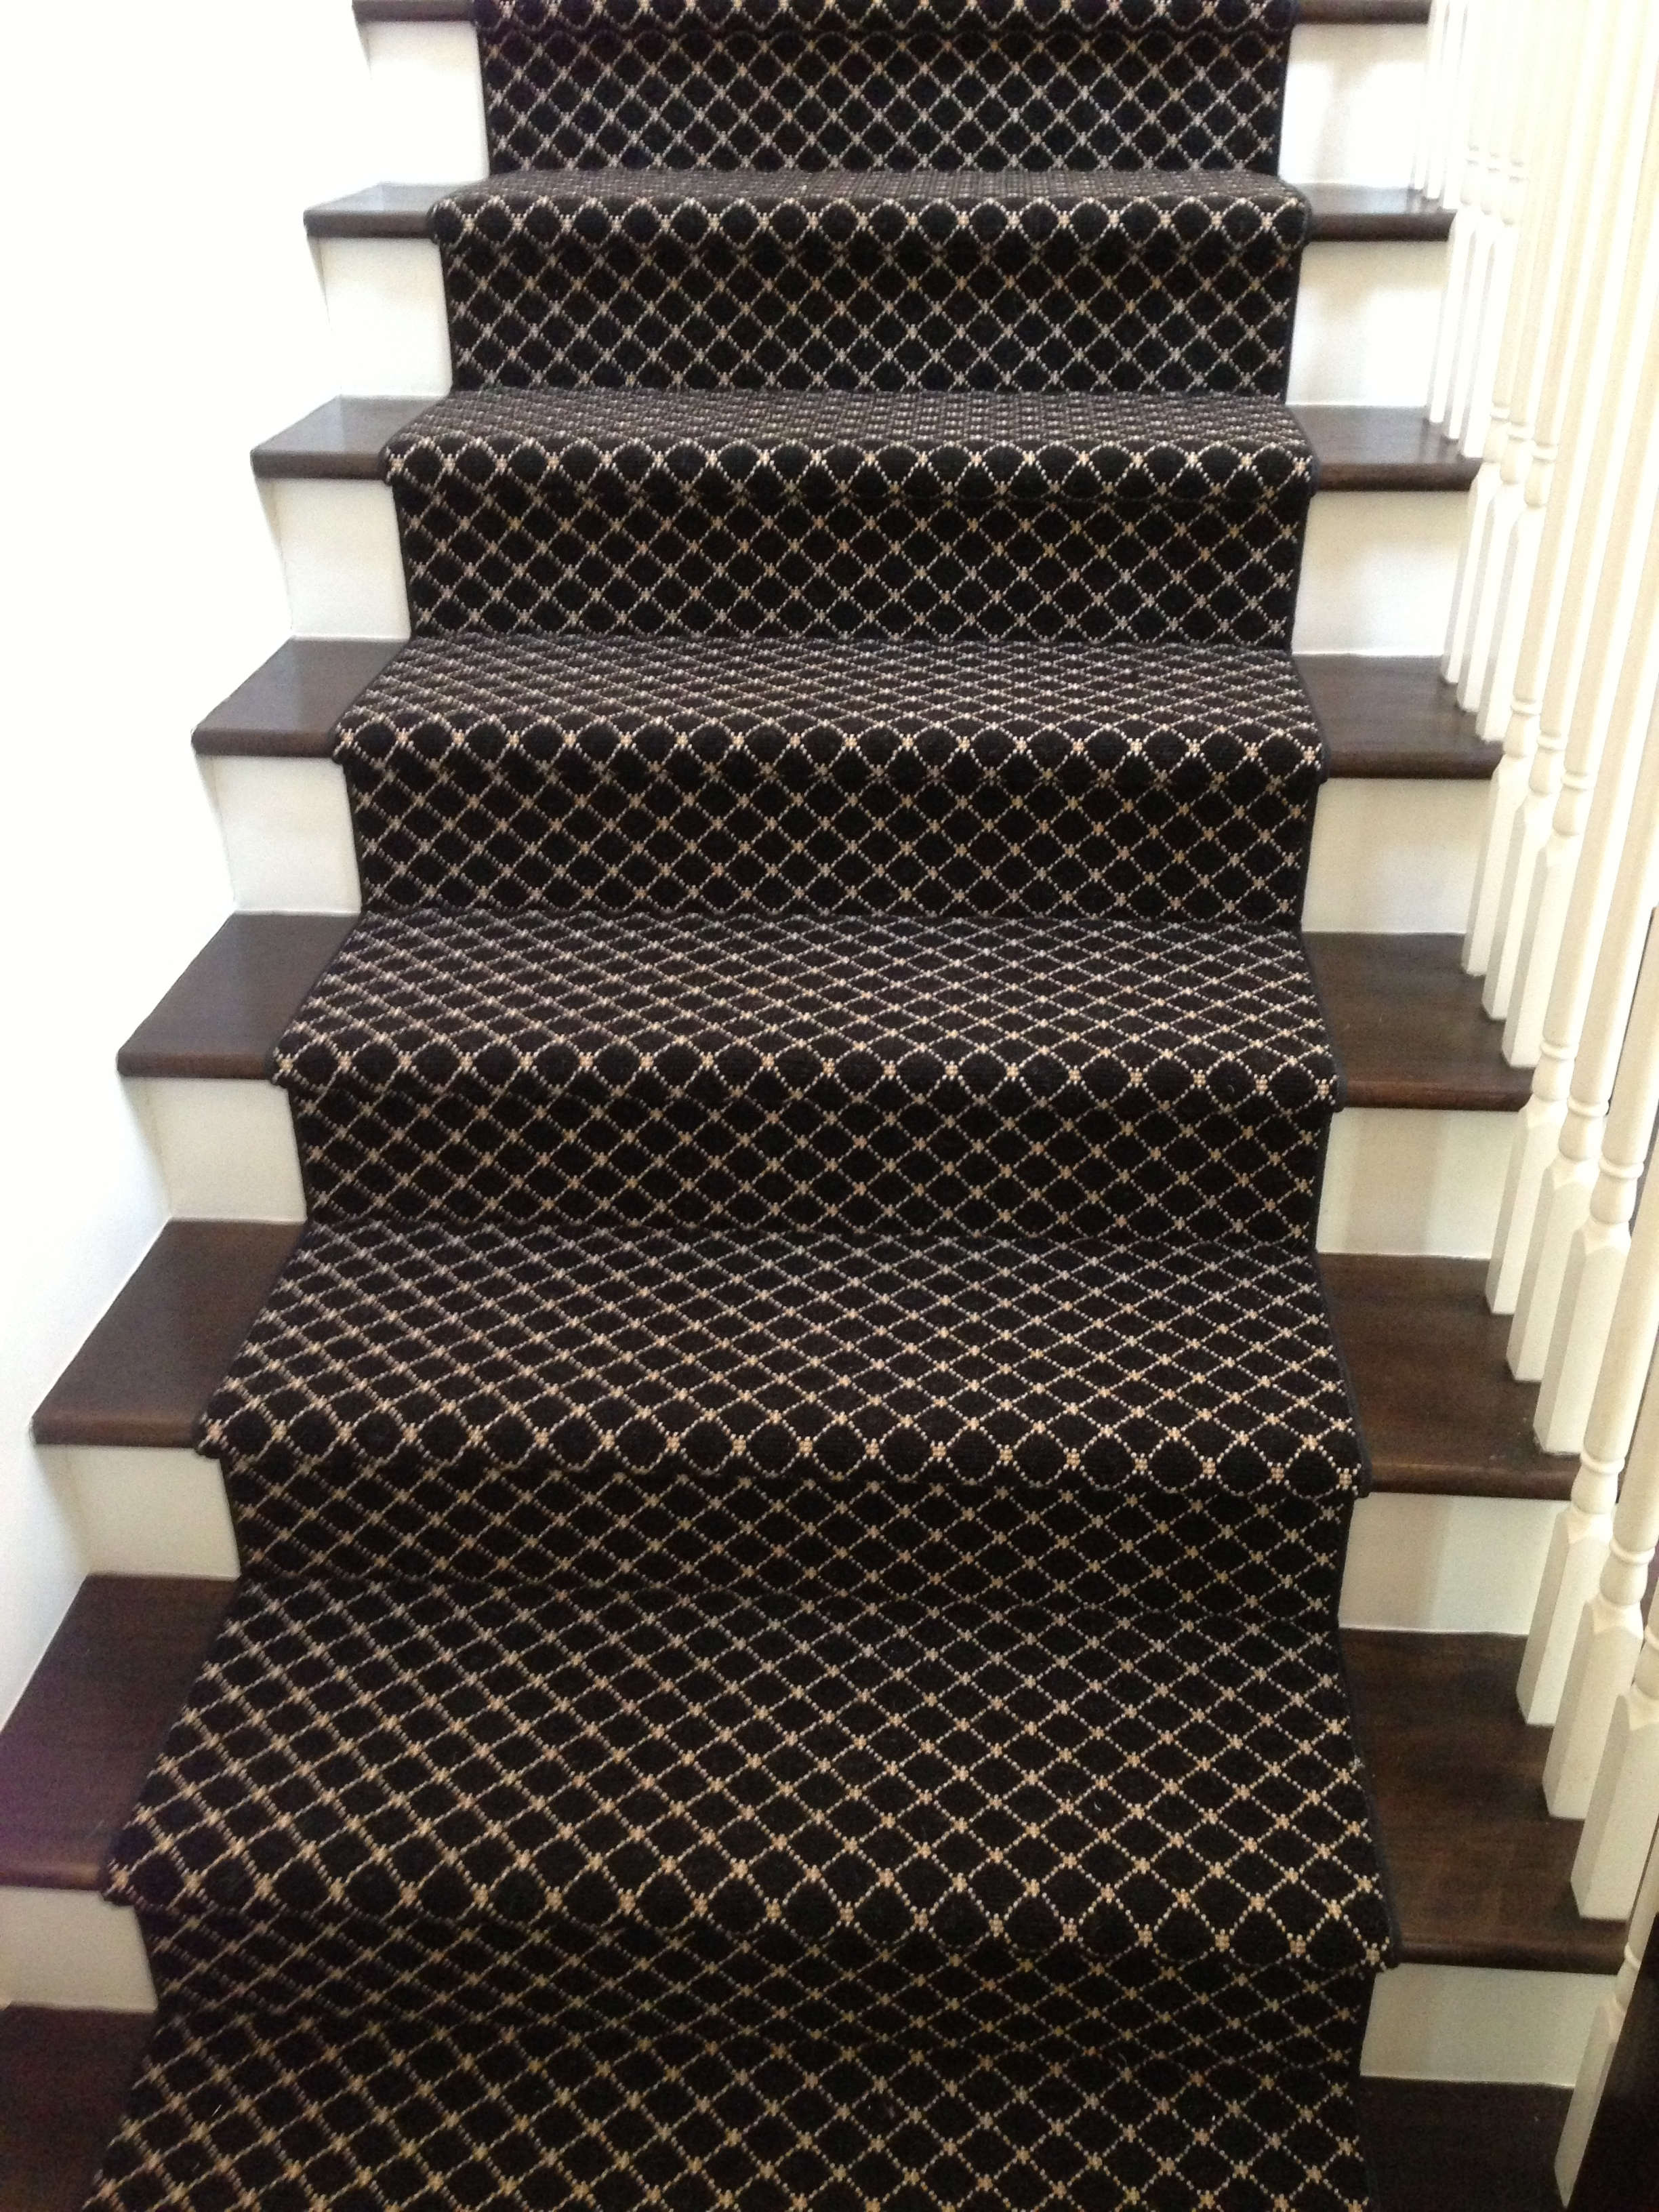 Should I Carpet My Stairs With The Same Carpet I Use Upstairs | Low Pile Carpet For Stairs | Wool | Carpet Wrapped | Hallway | Bedroom | High End